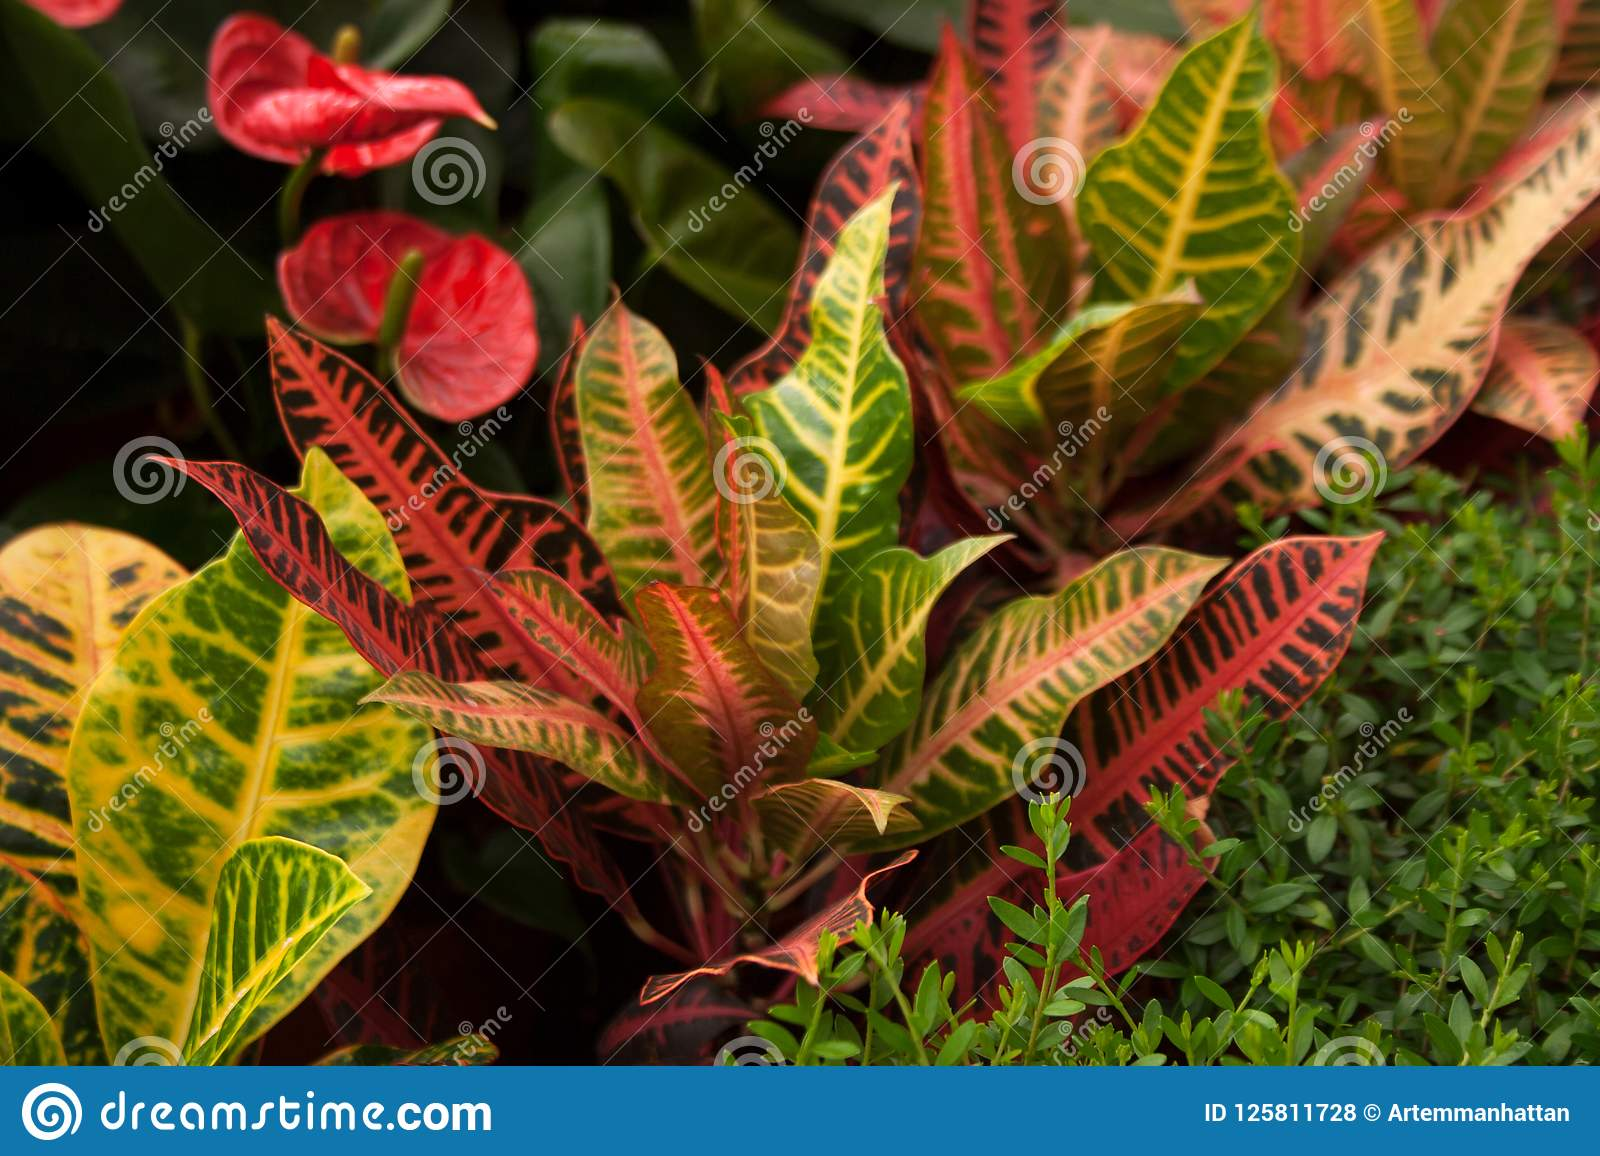 Variegated croton plant with bright colorful leaves